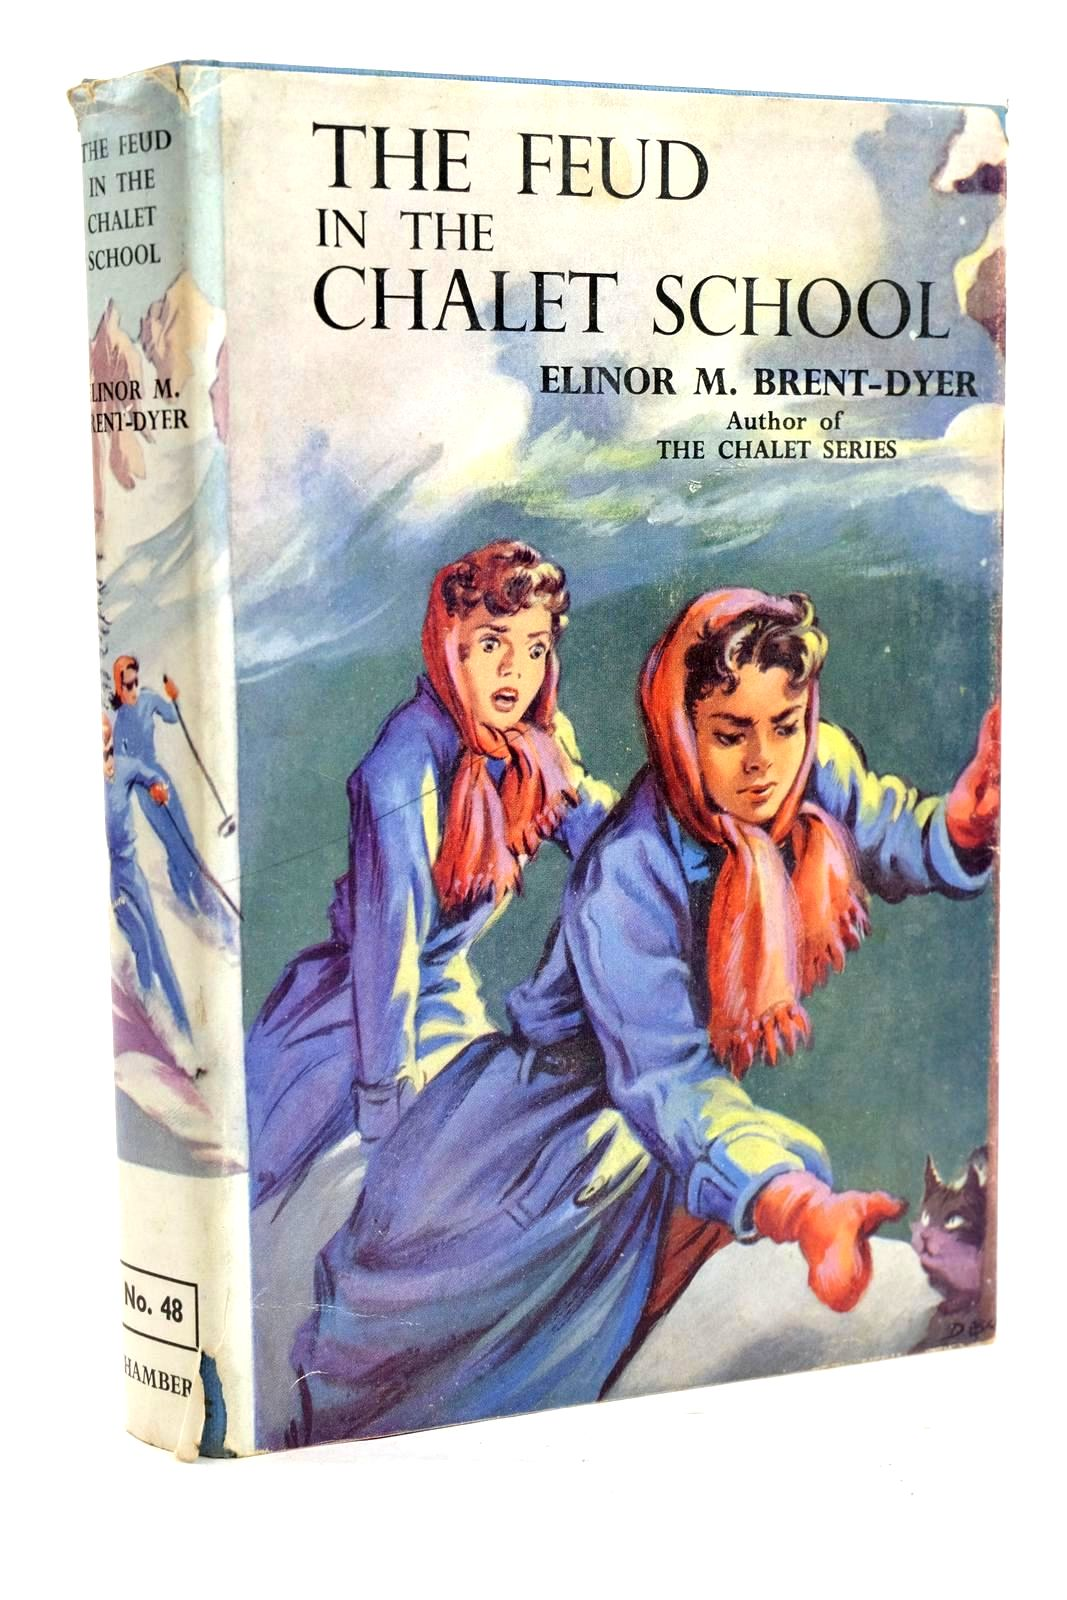 Photo of THE FEUD IN THE CHALET SCHOOL written by Brent-Dyer, Elinor M. illustrated by Brook, D. published by W. & R. Chambers Limited (STOCK CODE: 1320203)  for sale by Stella & Rose's Books